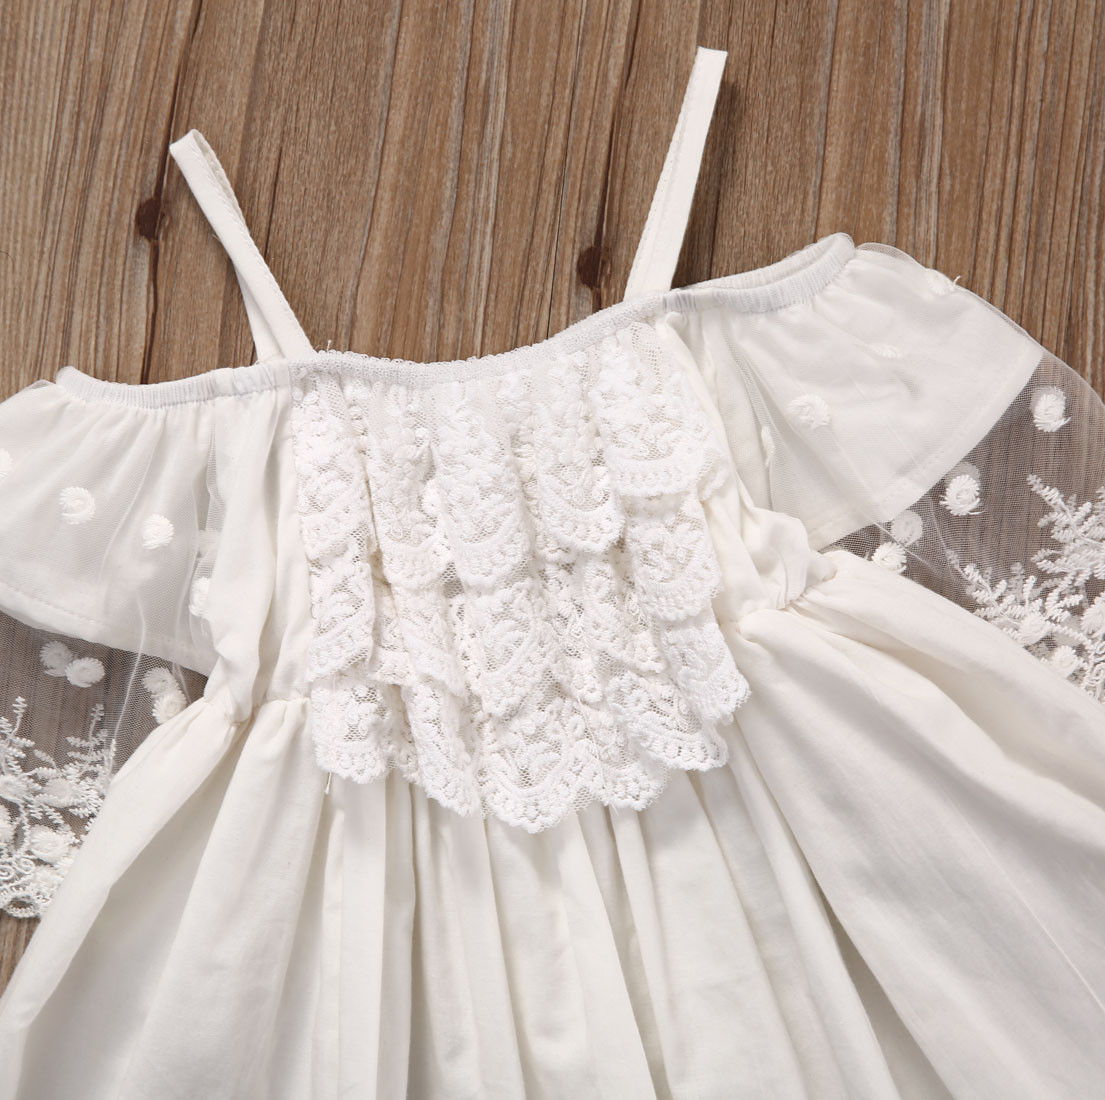 Lace Girl Clothing Princess Dress Kid Baby Party Wedding Pageant Formal Mini Cute White Dresses Clothes Baby Girls 7